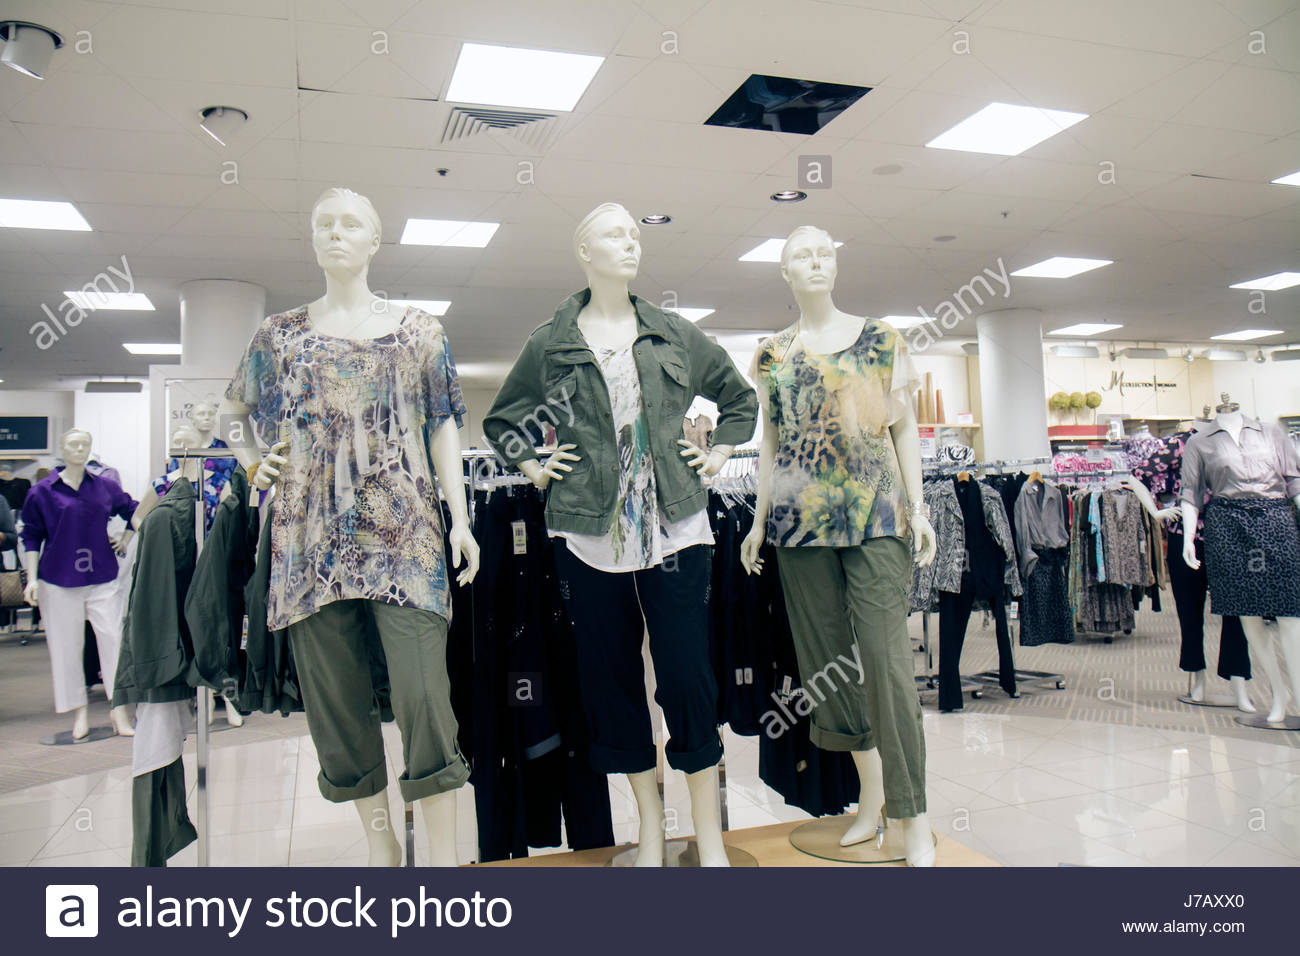 d320a2454 Miami Florida Dadeland Mall shopping retail display for sale Macy's  Department Store clothing women's mannequin -